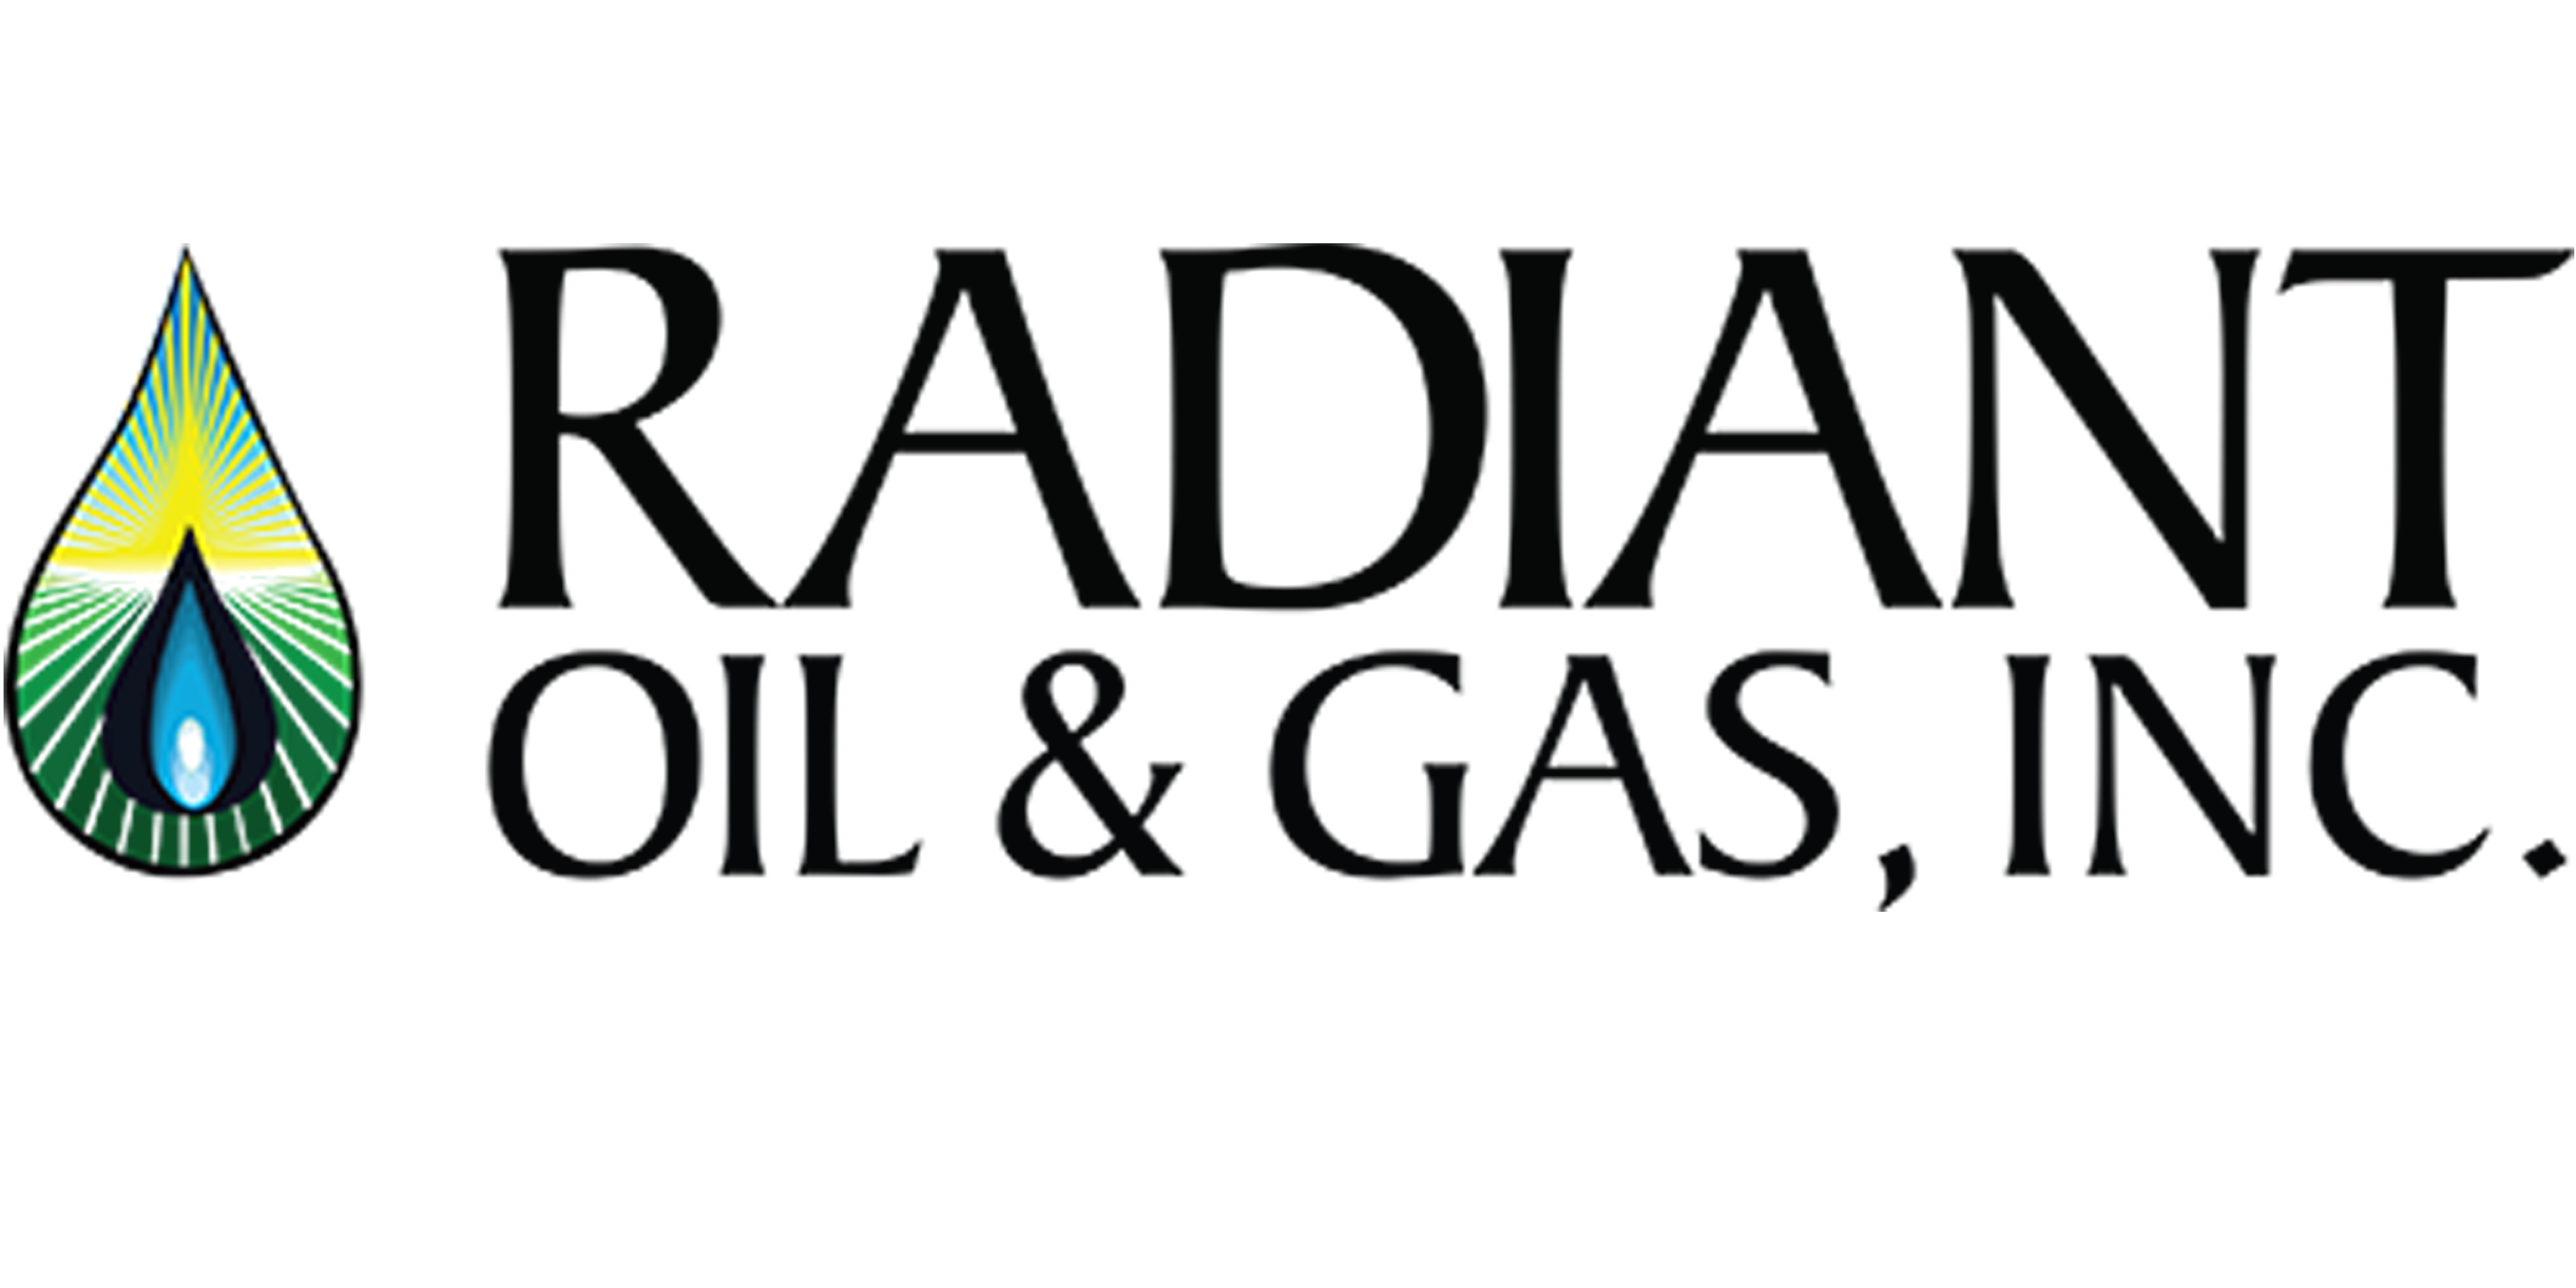 Radiant Oil and Gas Announces Elimination of $37 Million of Institutional Debt